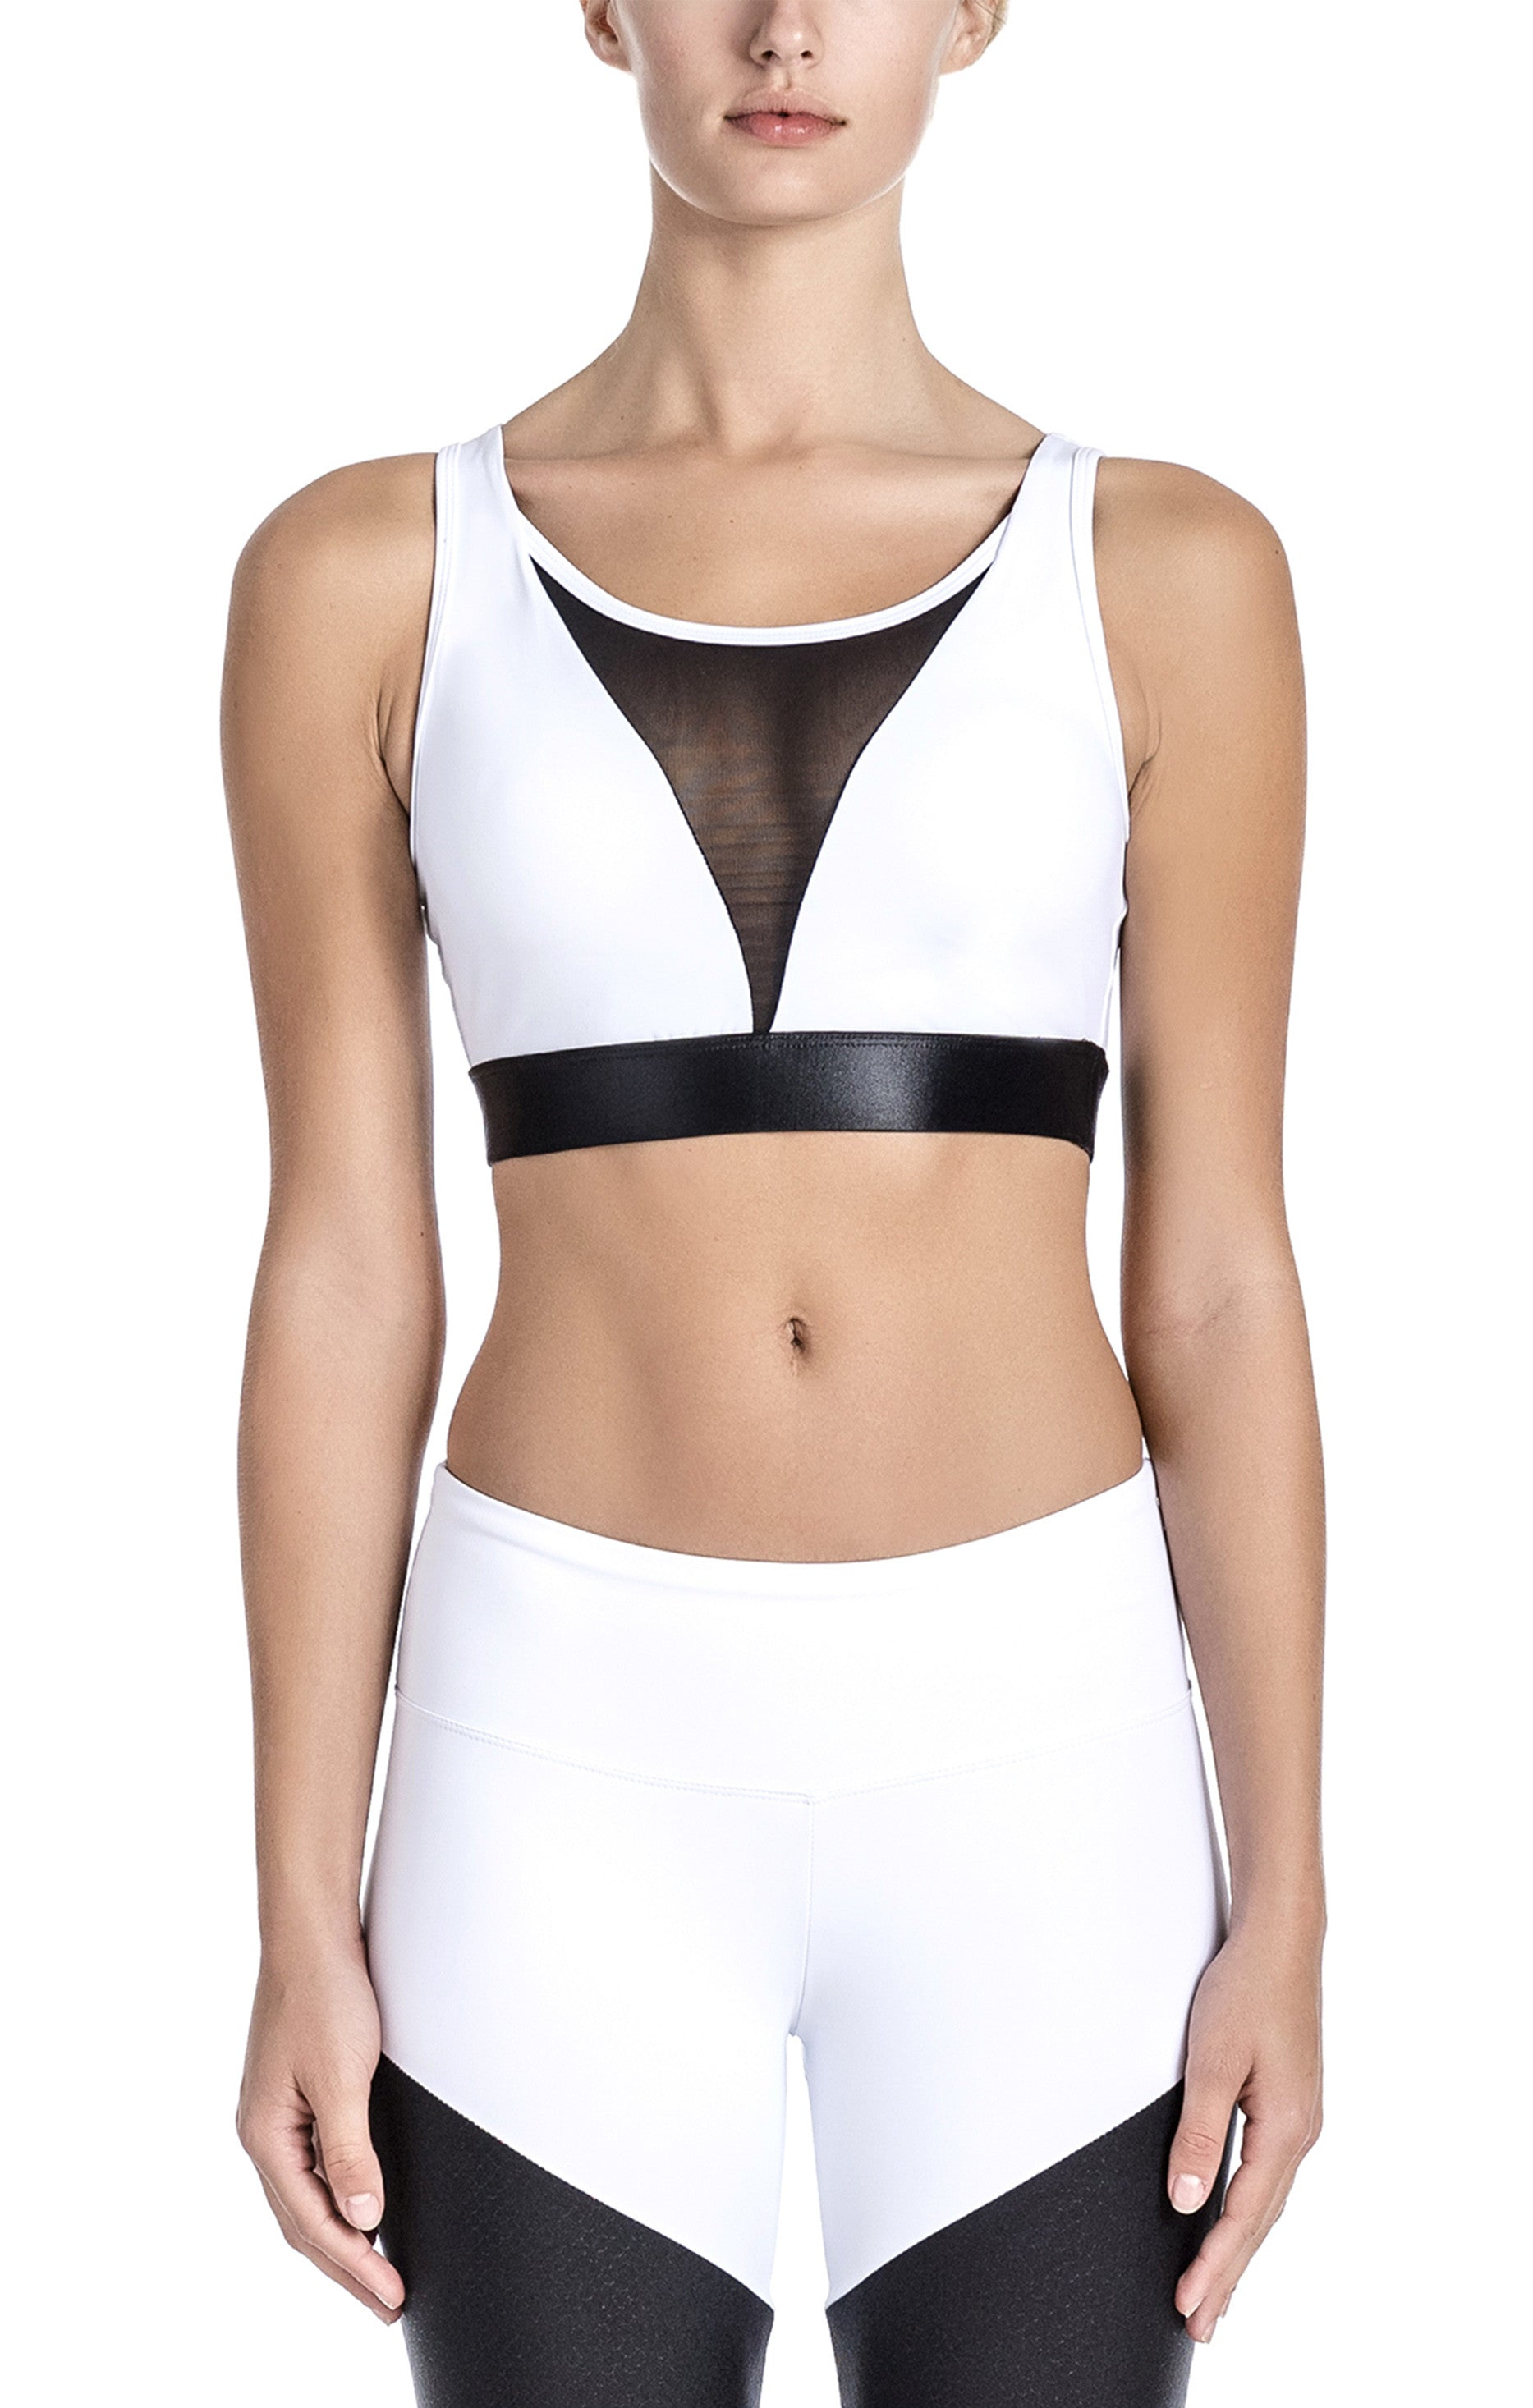 Paola Bralette from Brazil Wear - Sports Bra Top